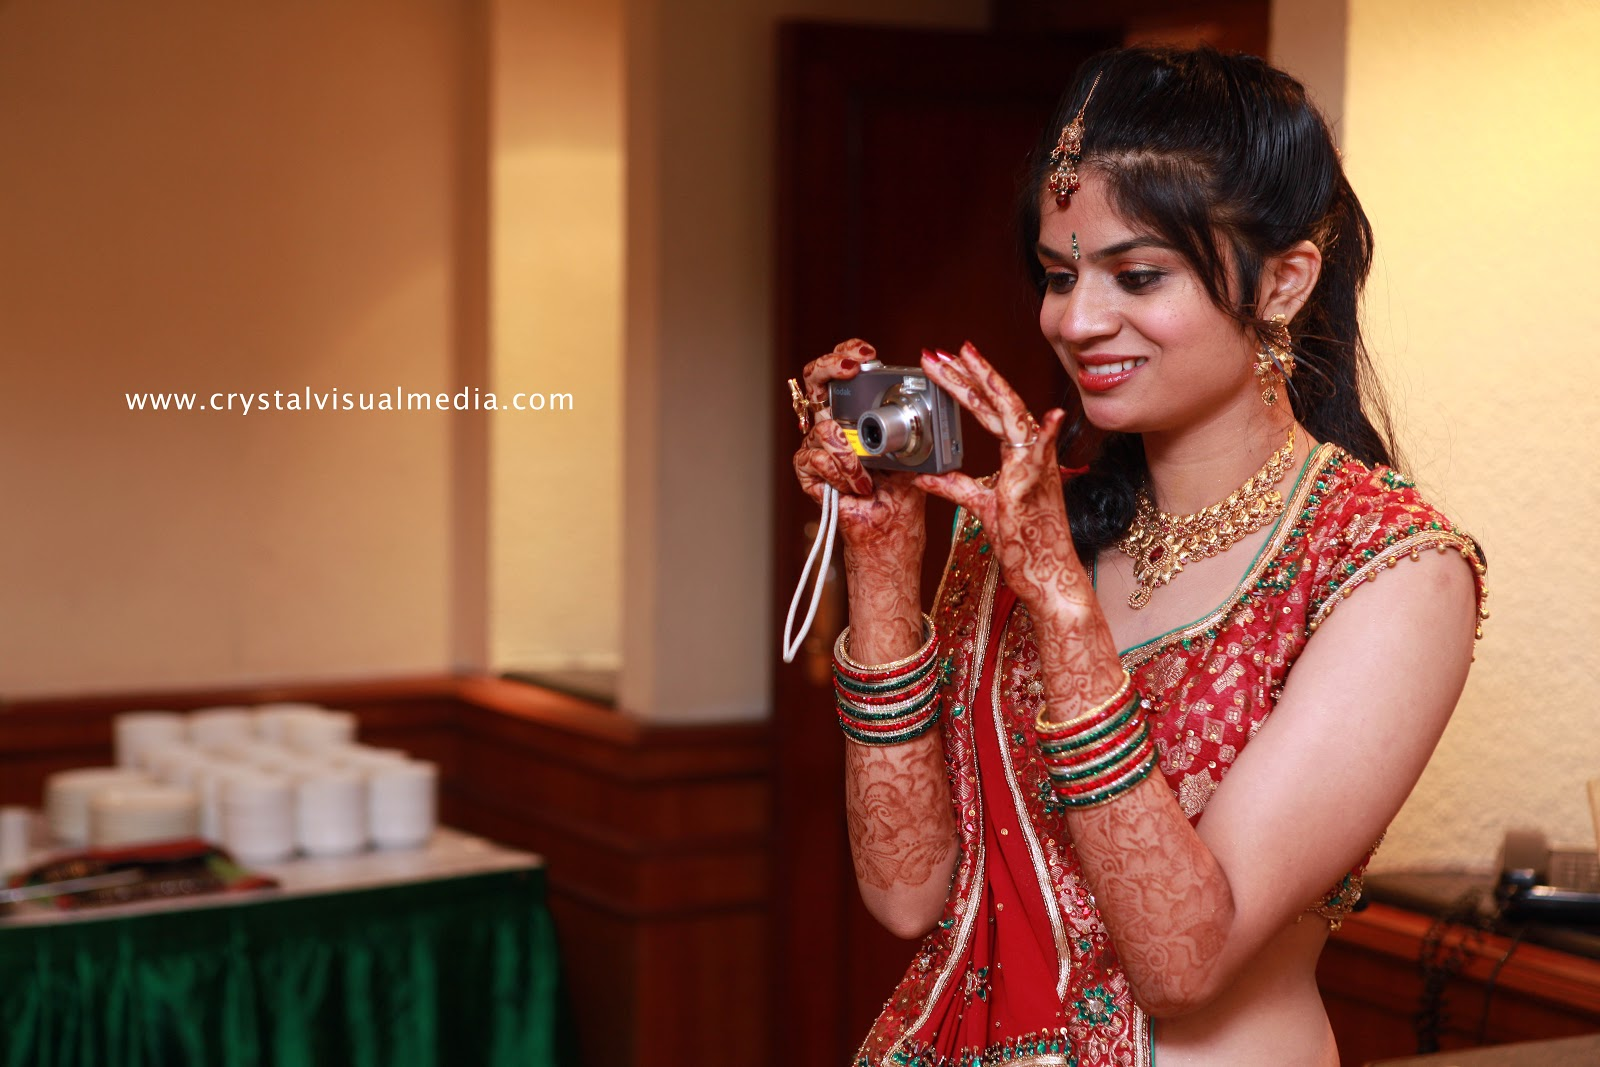 Kerala wedding photography - When Everybody Is A Photographer C